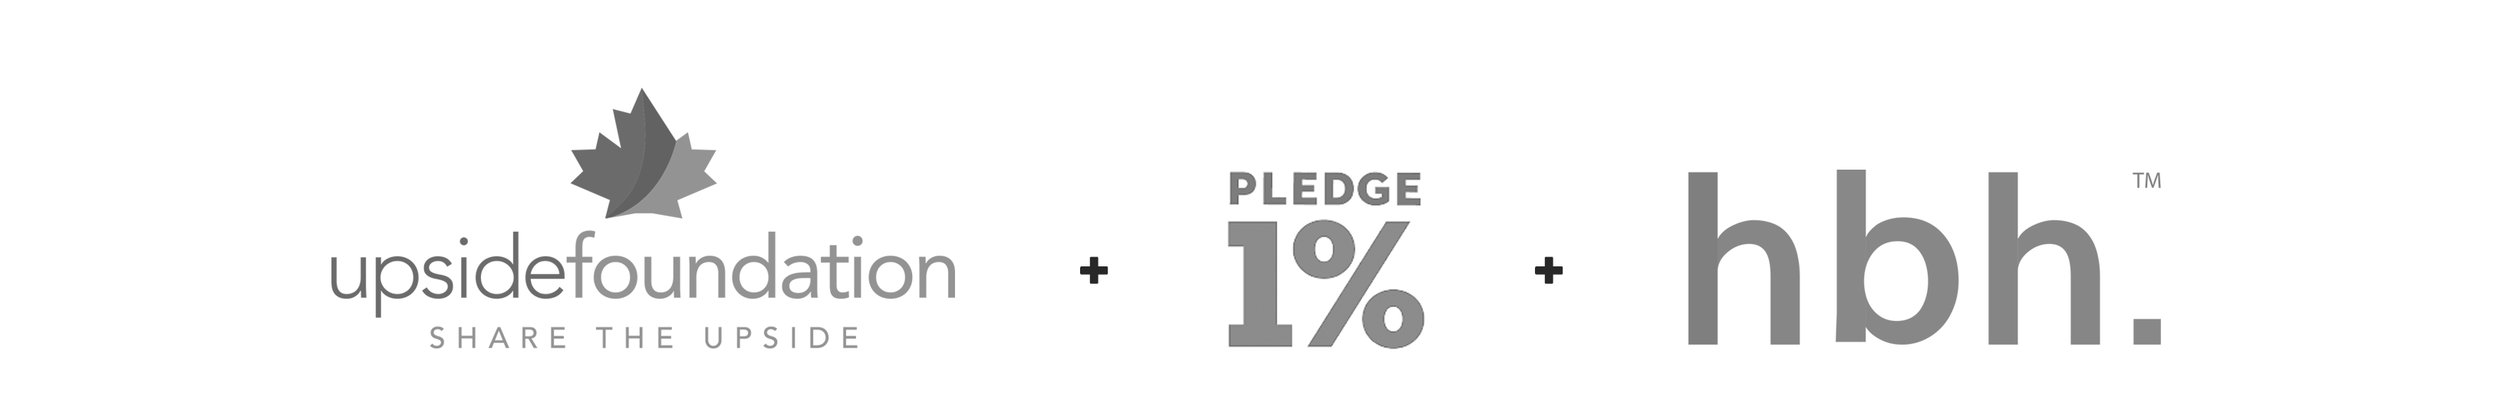 Upside-Foundation-Pledge-1-Percent-Hardbody-Hippie-Collaboration-Apparel-that-Gives-Back.png